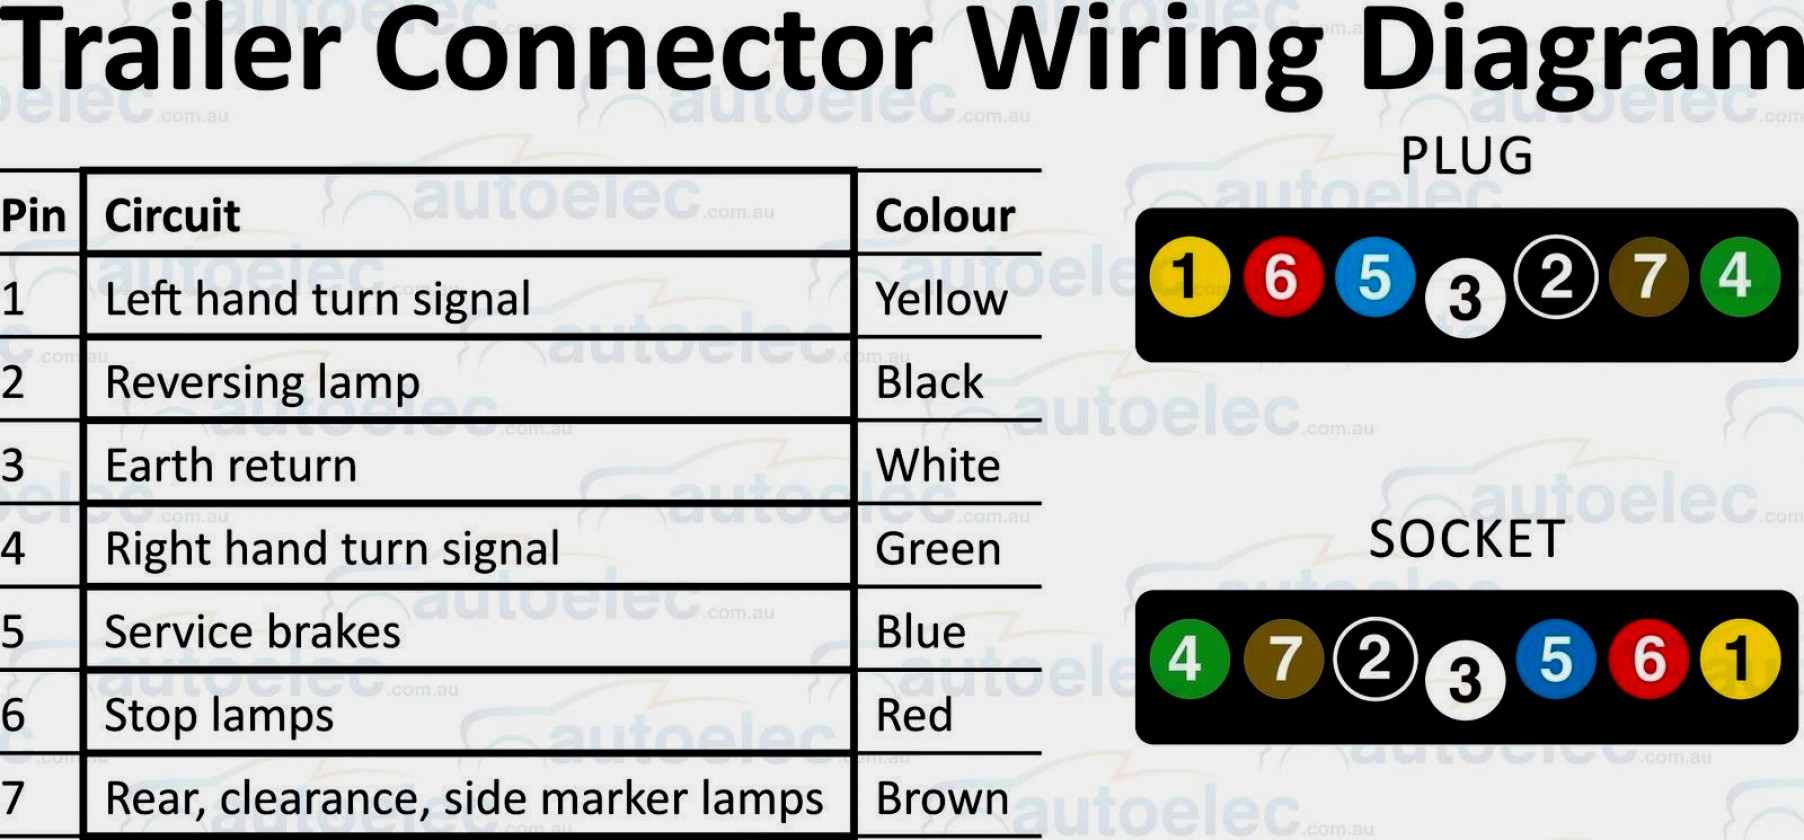 Trailer Wiring Diagram 5 Core | Best Wiring Library - 5 Core Trailer Wiring Diagram